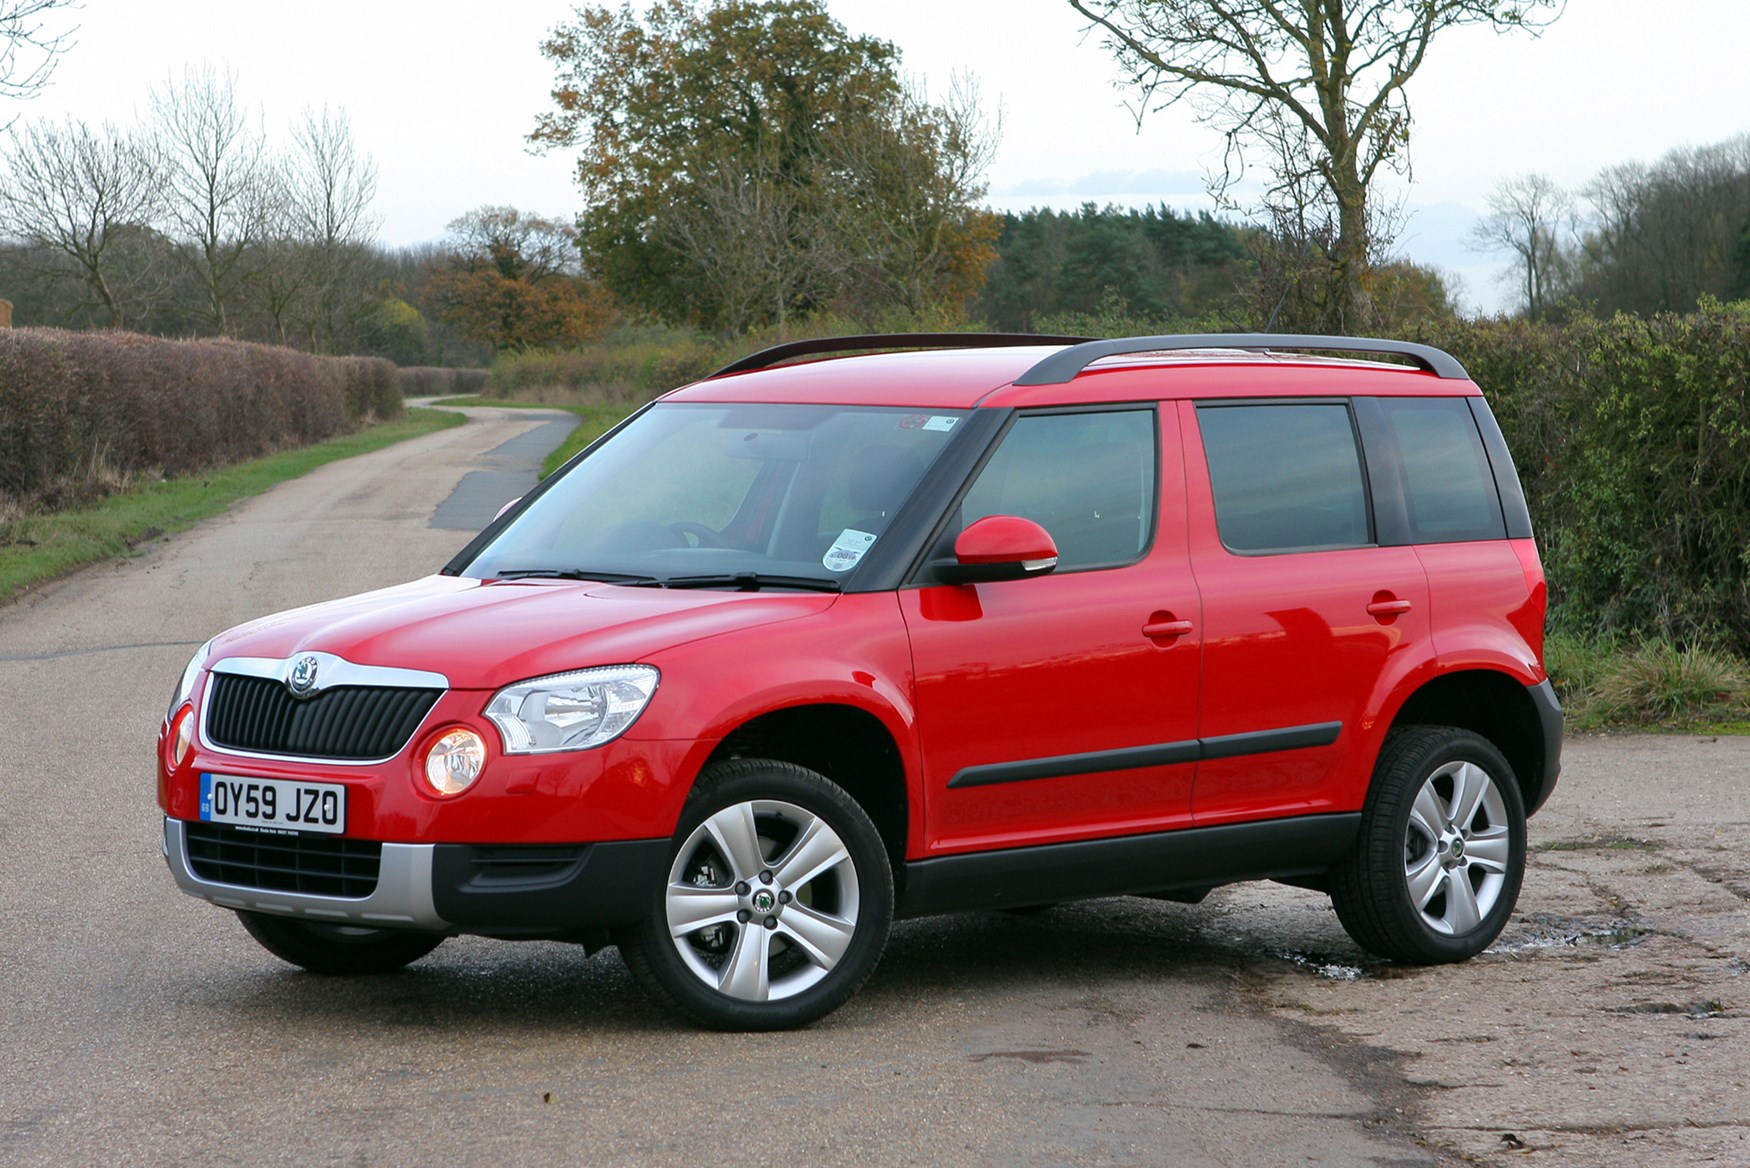 skoda yeti skoda yeti se drive and se l drive added to range auto skoda yeti 4x4 outdoor. Black Bedroom Furniture Sets. Home Design Ideas